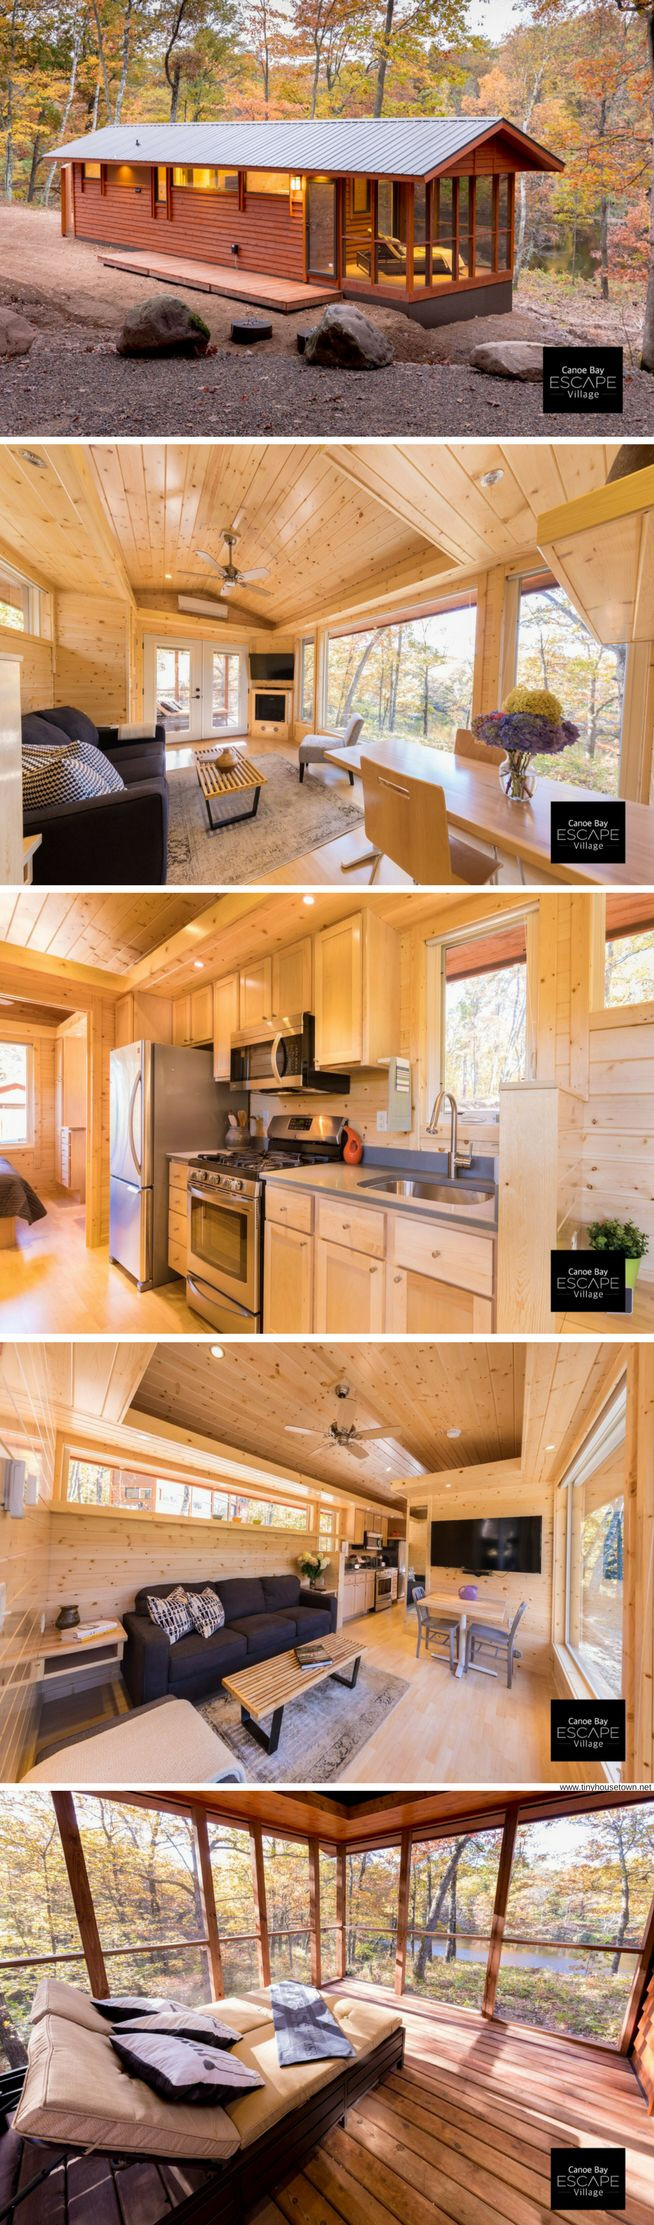 15 Spectacular Canoe Bay Hardwood Flooring 2021 free download canoe bay hardwood flooring of 3841 best casas lindas images on pinterest small houses floor intended for the premiere cabin available for order from escape homes